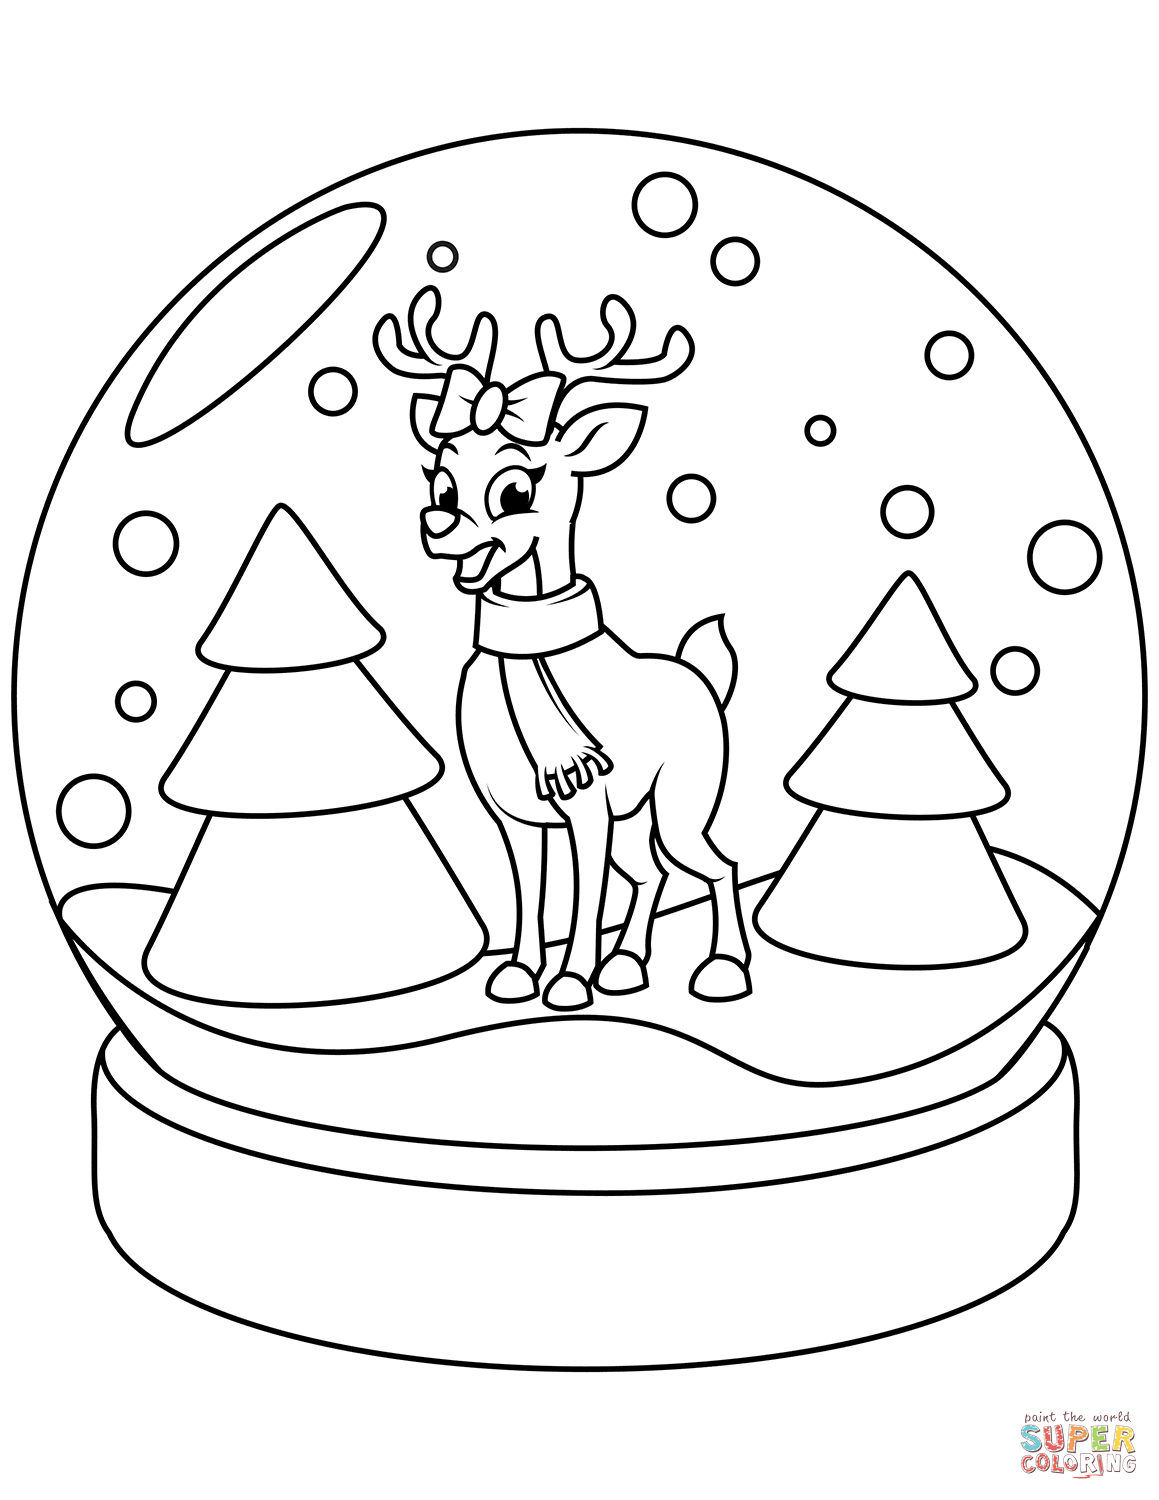 Santa And Rudolph Coloring Pages Odd Reindeer Coloring Pages Snow Globe Page Christmas With